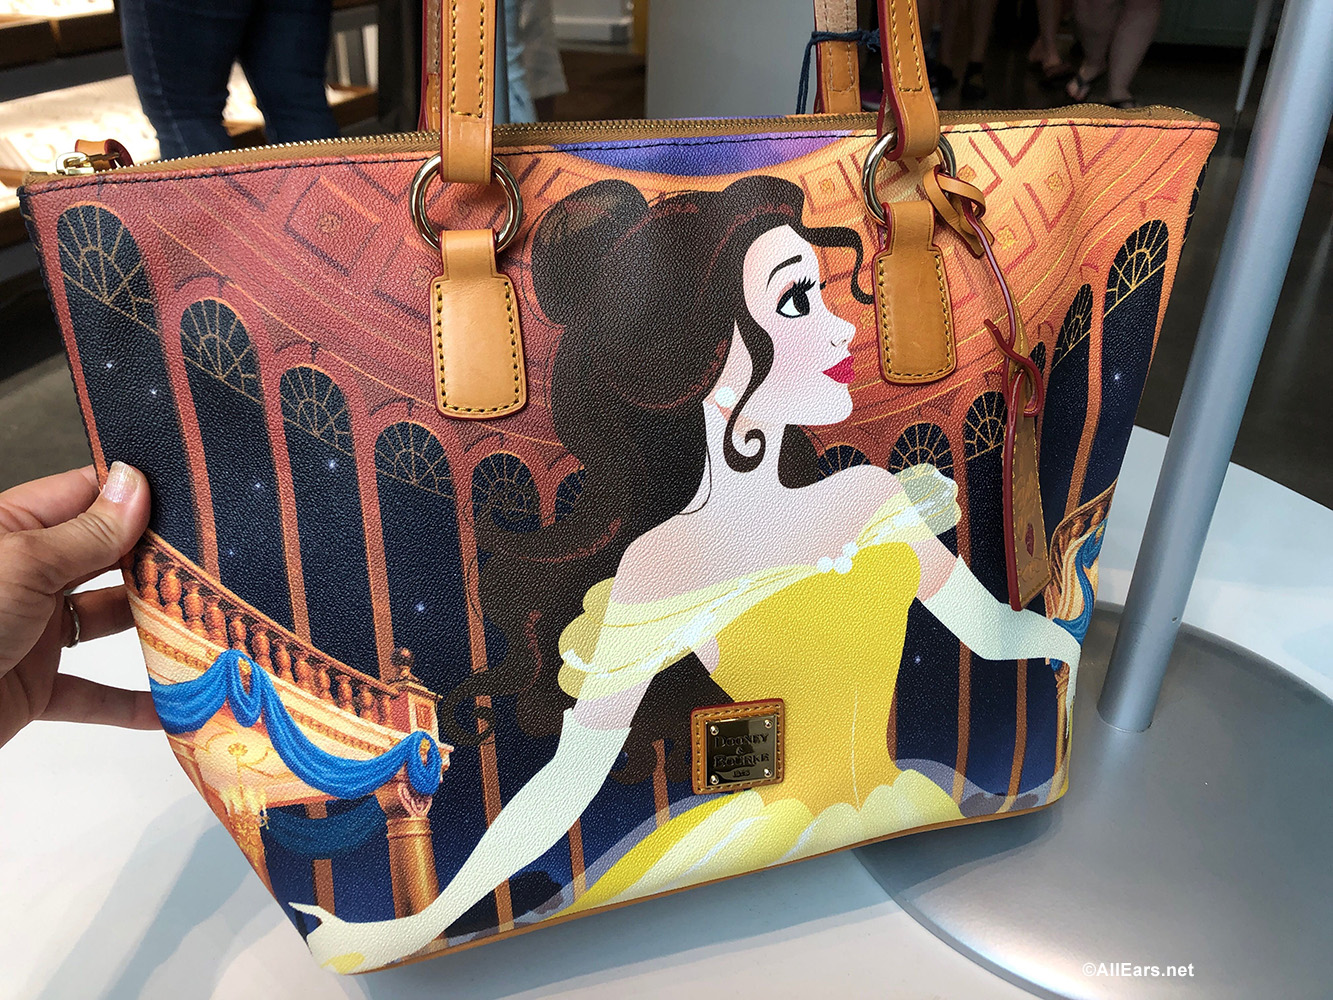 New Quot Beauty And The Beast Quot Dooney And Bourke Collection